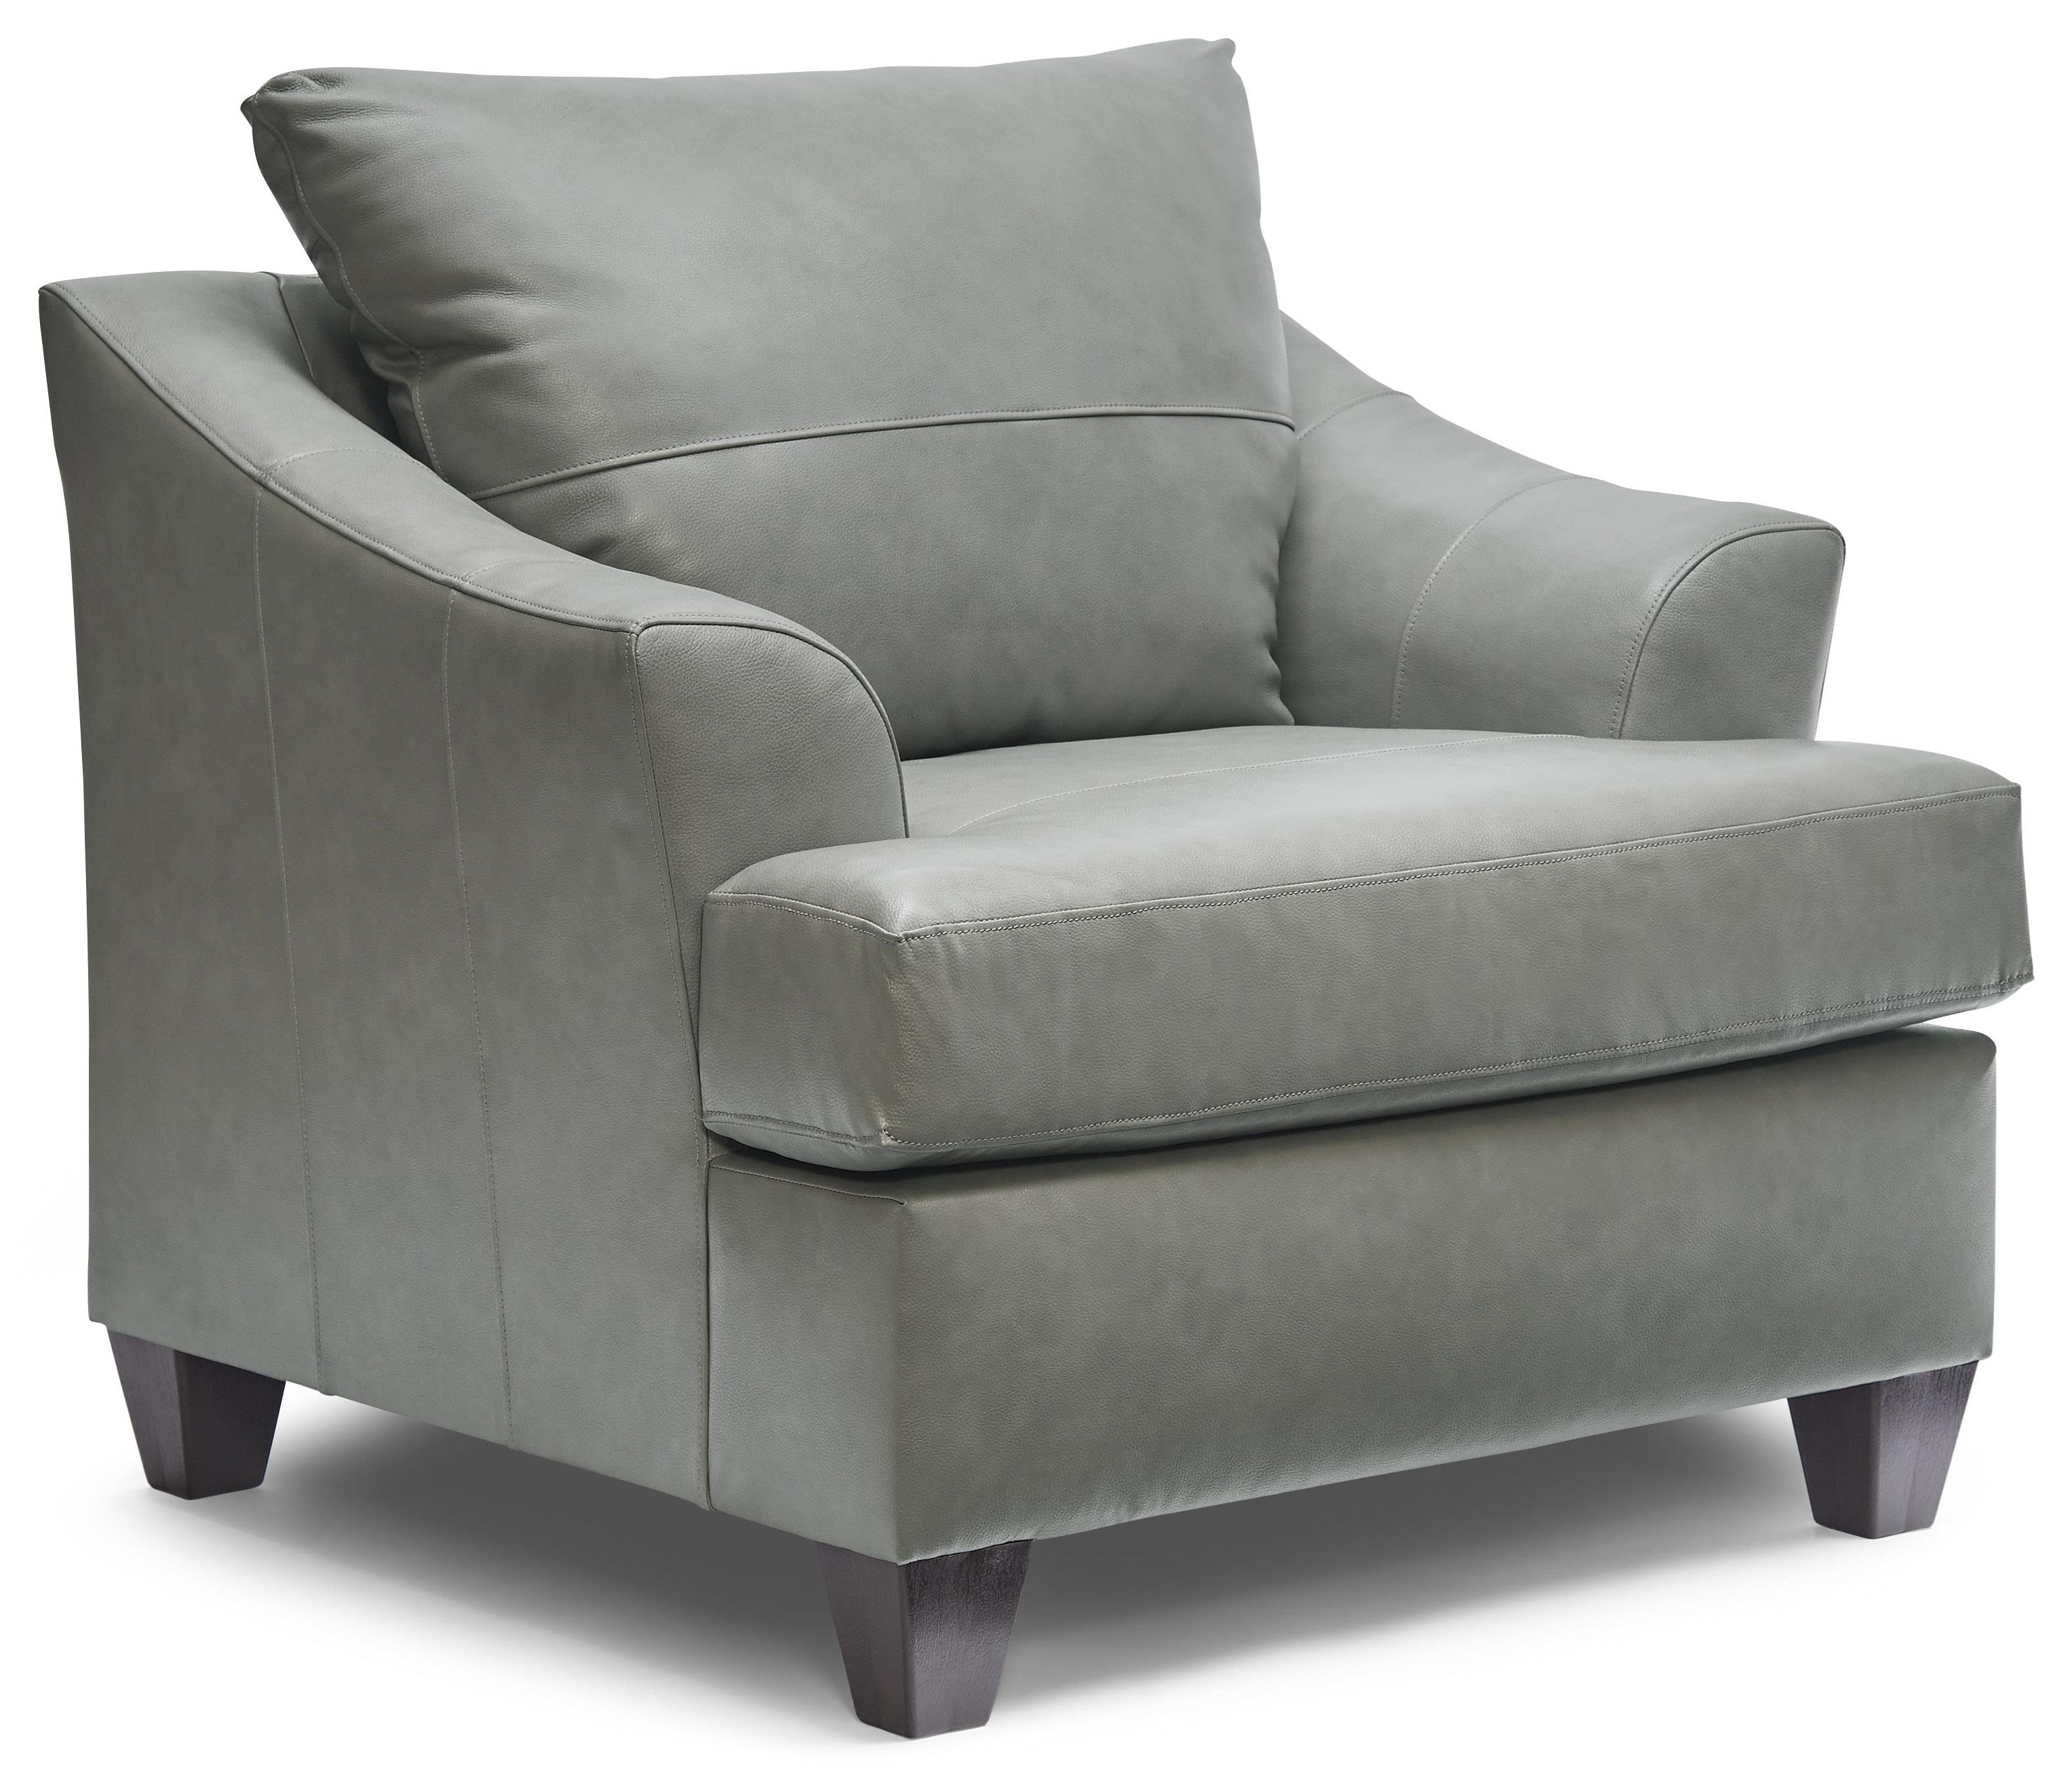 Novaleigh Leather Match Suit Chair